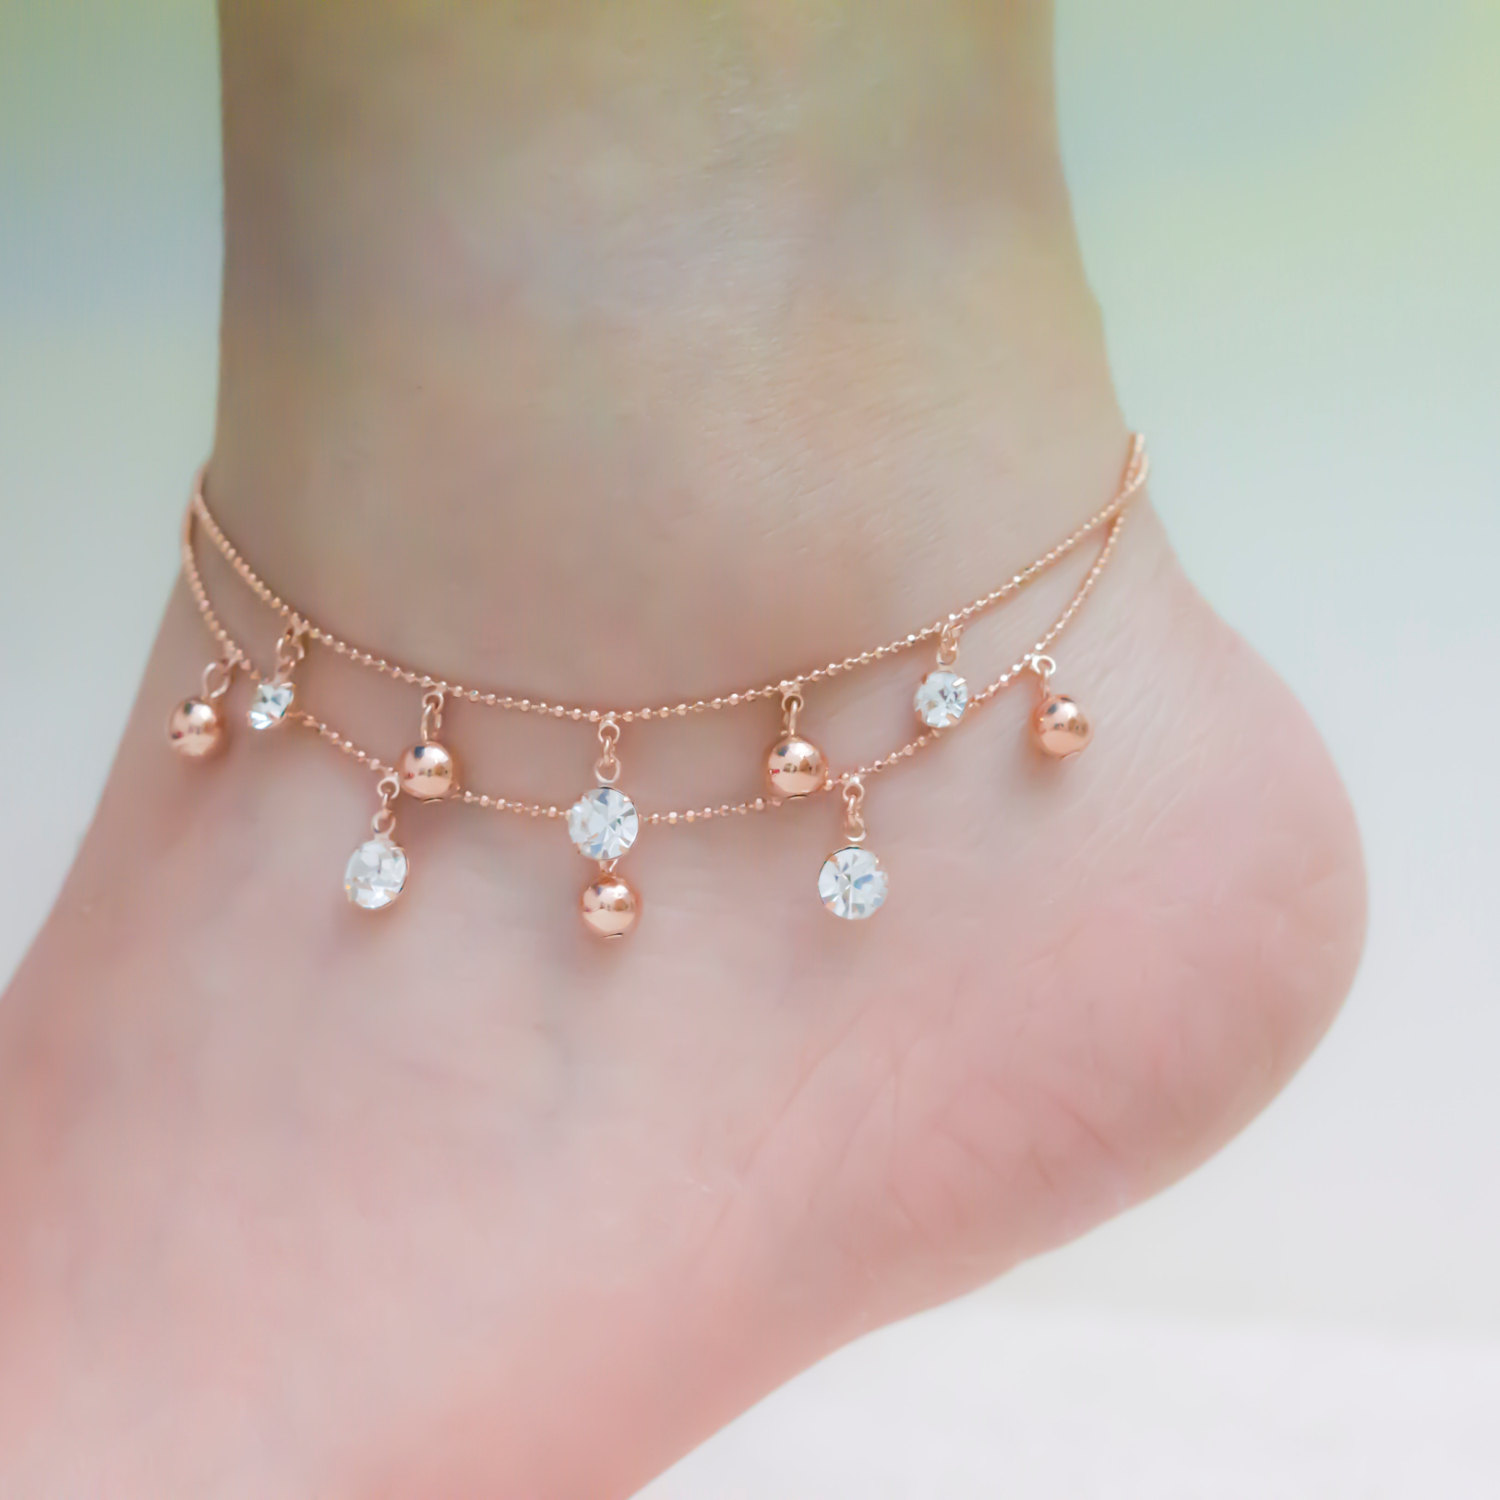 slave leg s is itm bracelet beach anklet gold beaded harness foot chain loading ankle image bare jewellery